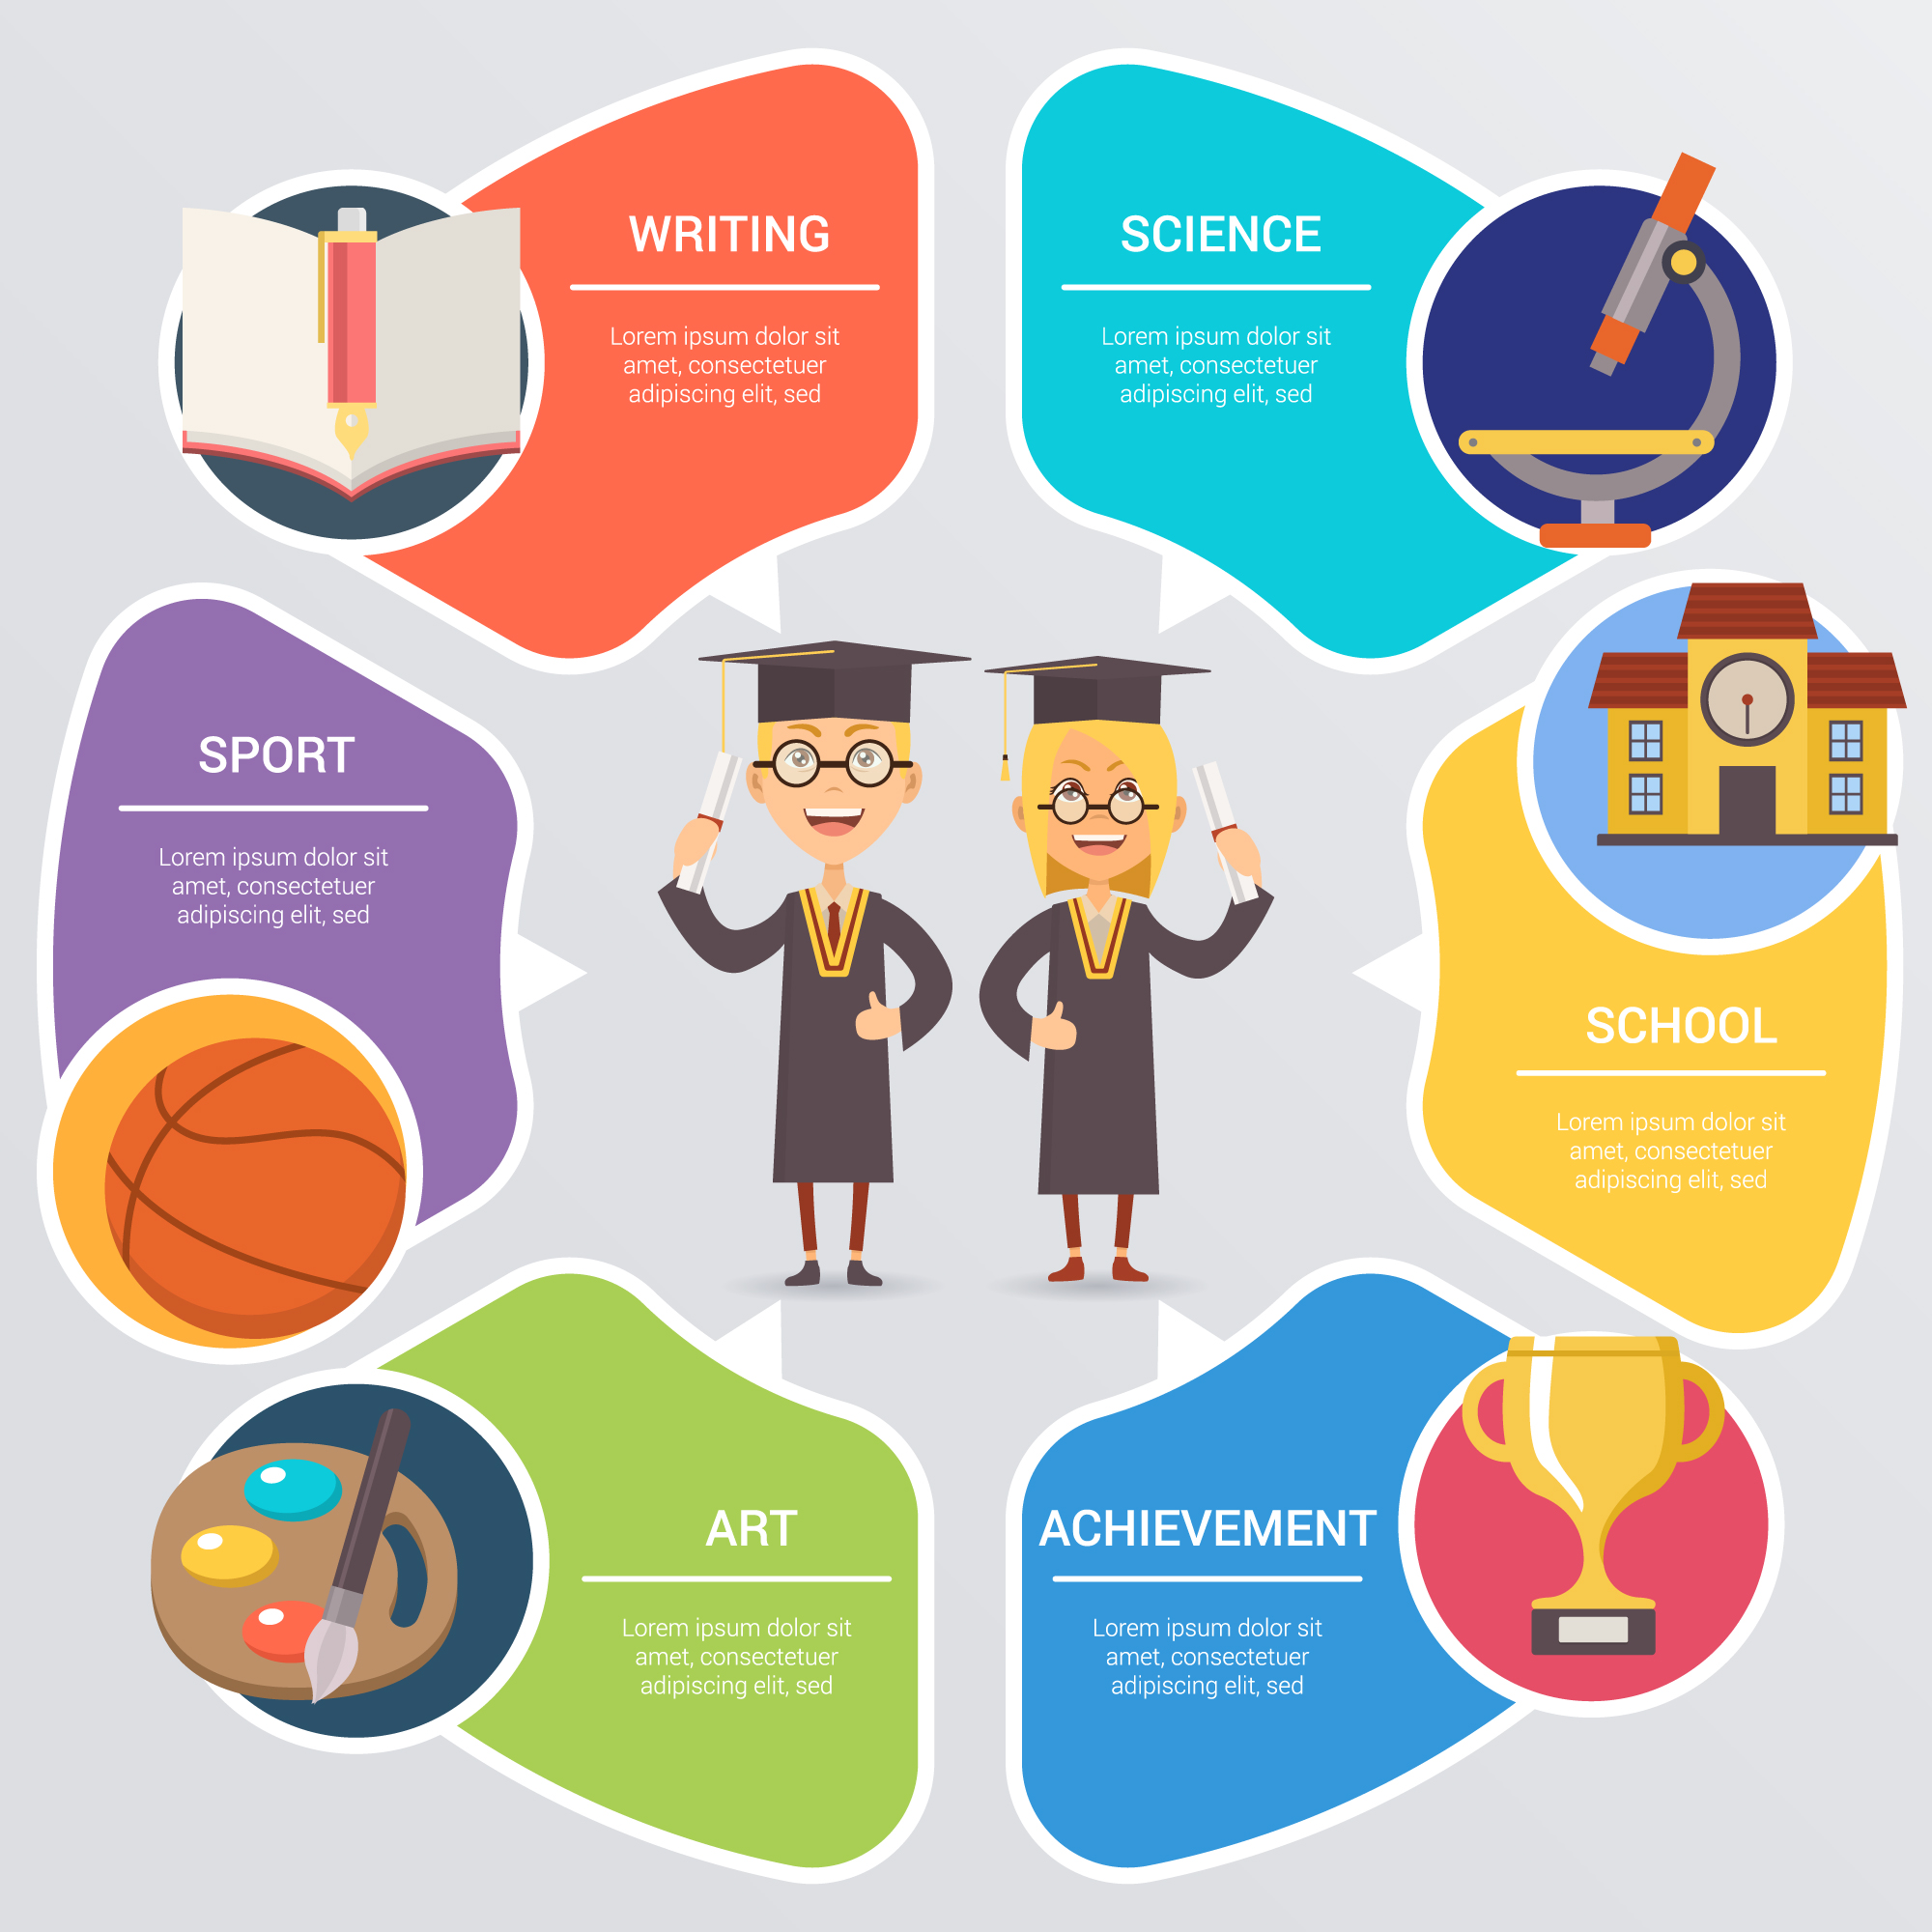 School infographic with students